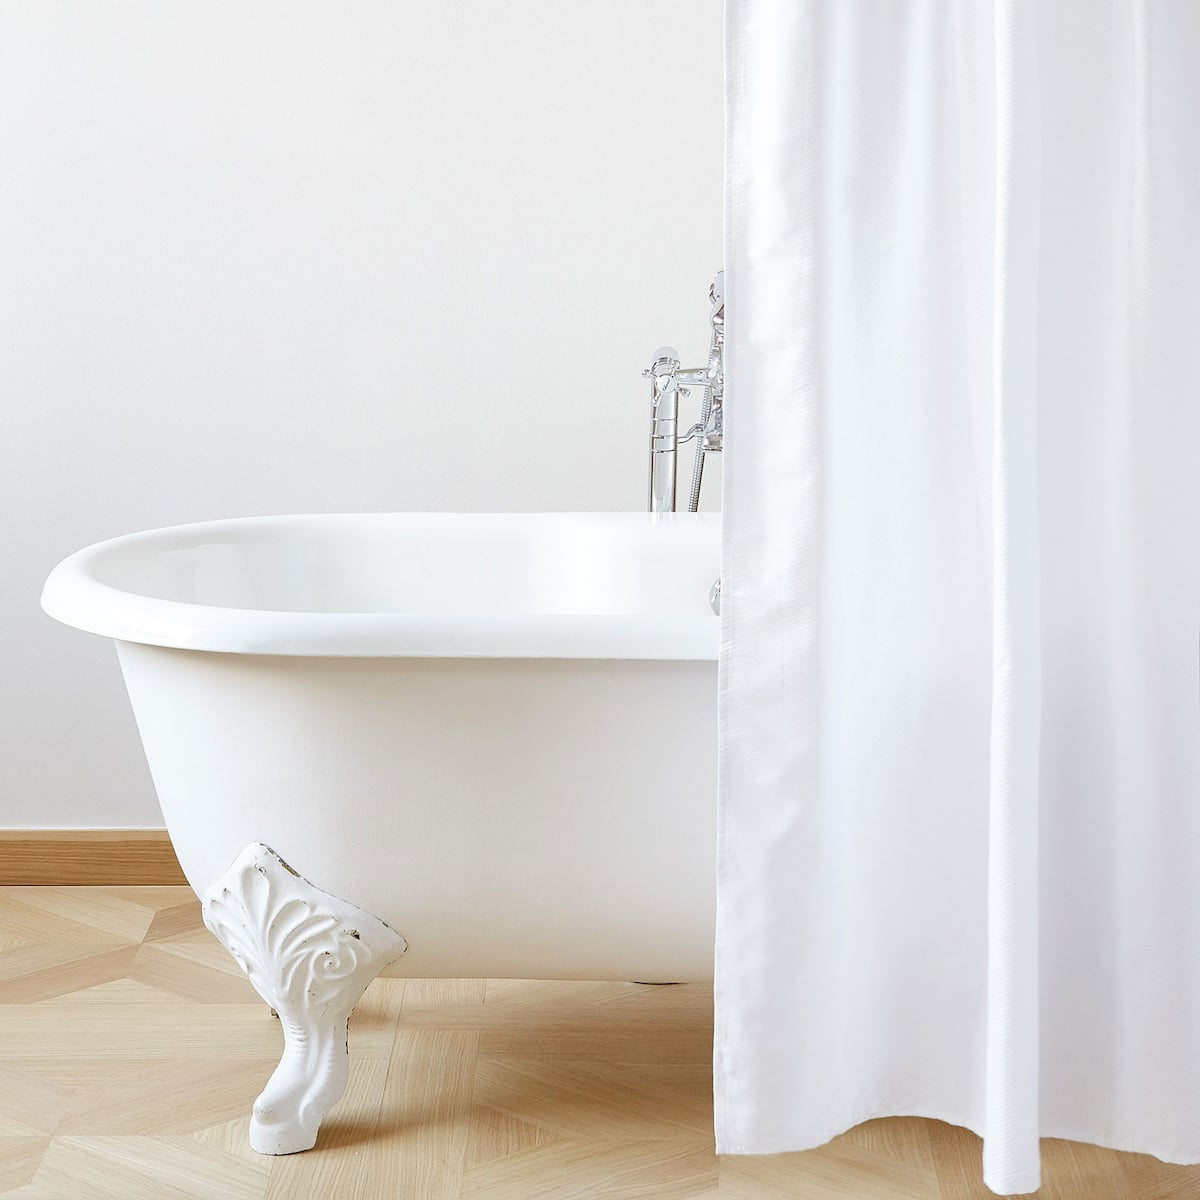 Image 1 Of The Product SEERSUCKER SHOWER CURTAIN